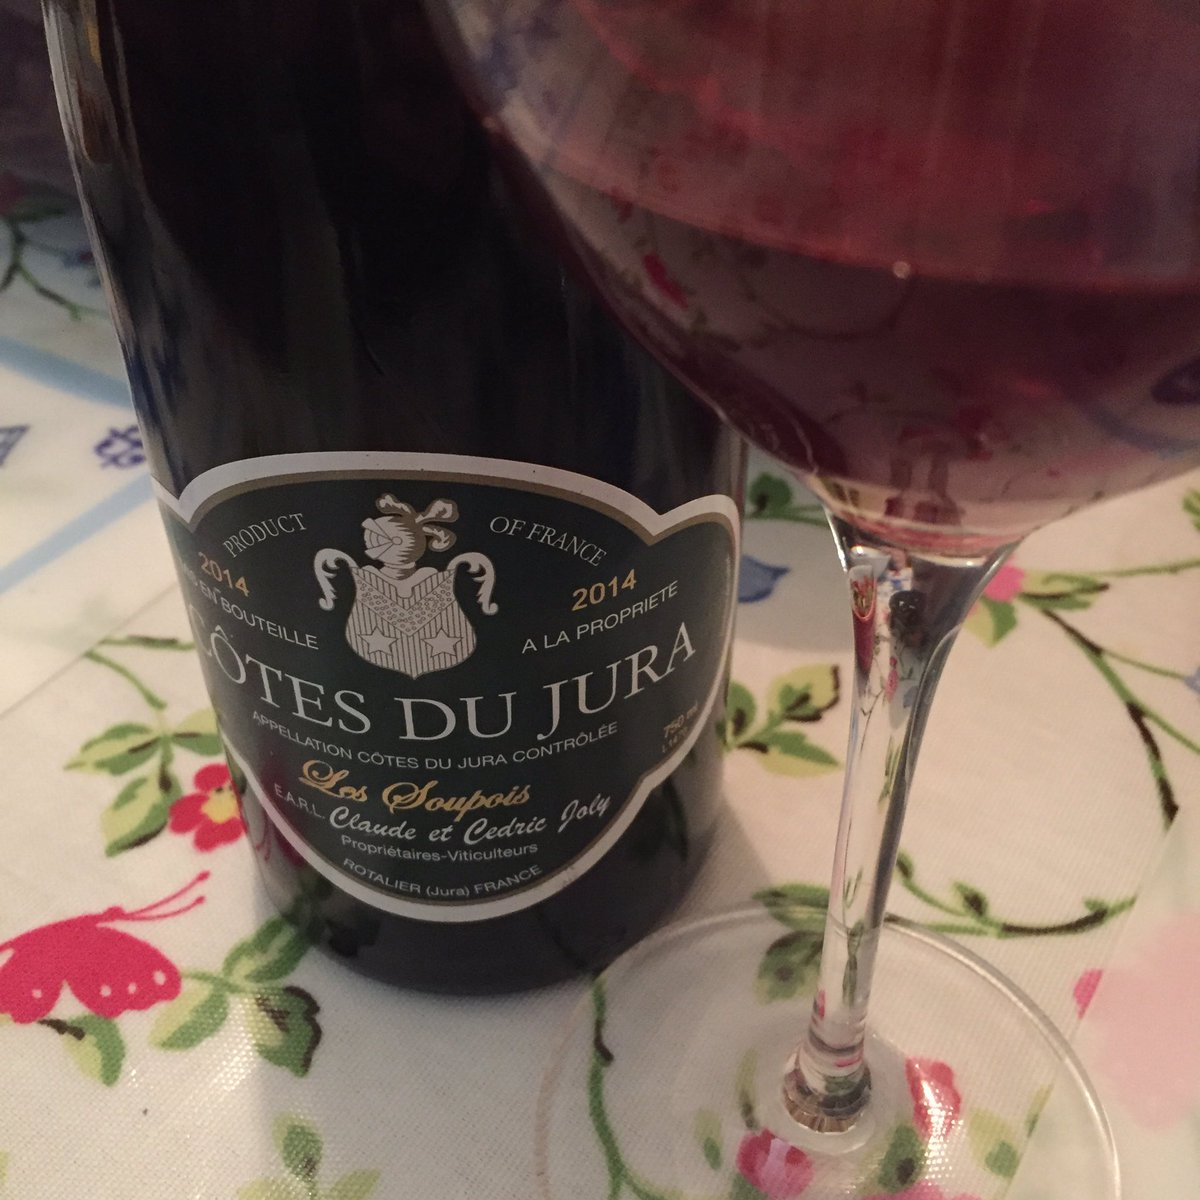 Red Côtes du Jura .... all in the name of research! https://t.co/pEK79vlKvQ